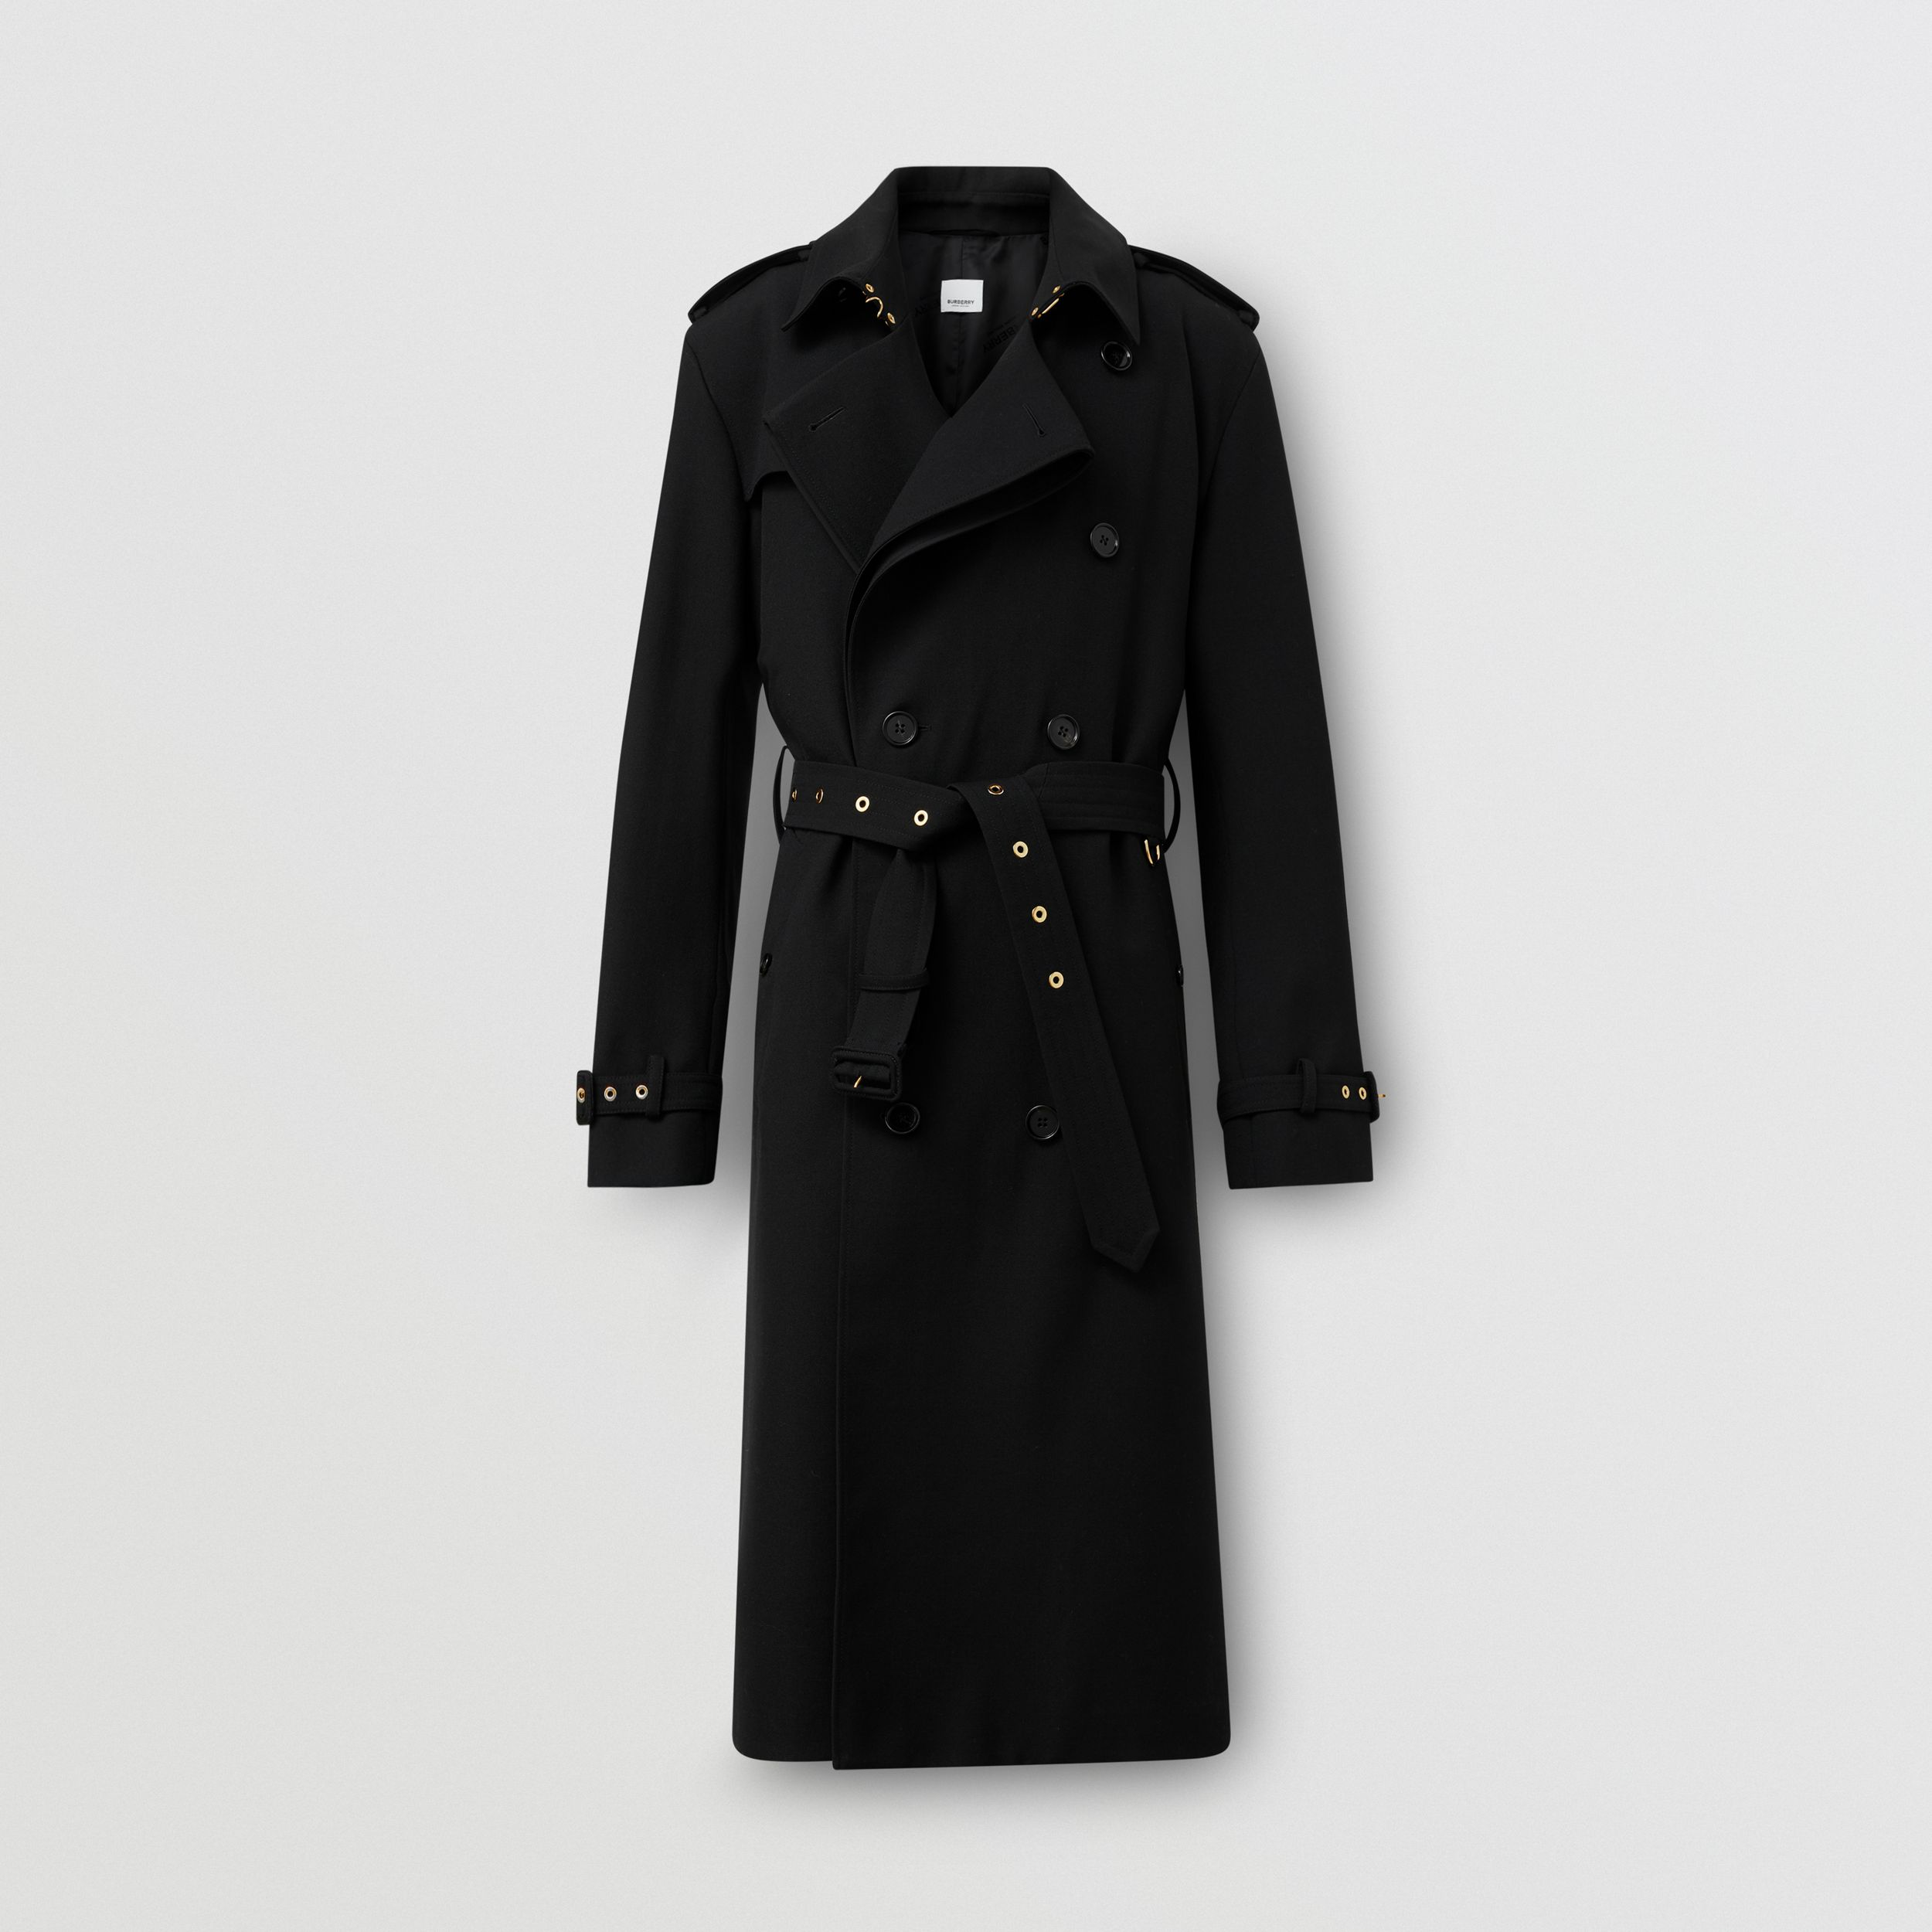 Wool Twill Loop-back Trench Coat in Black | Burberry - 4